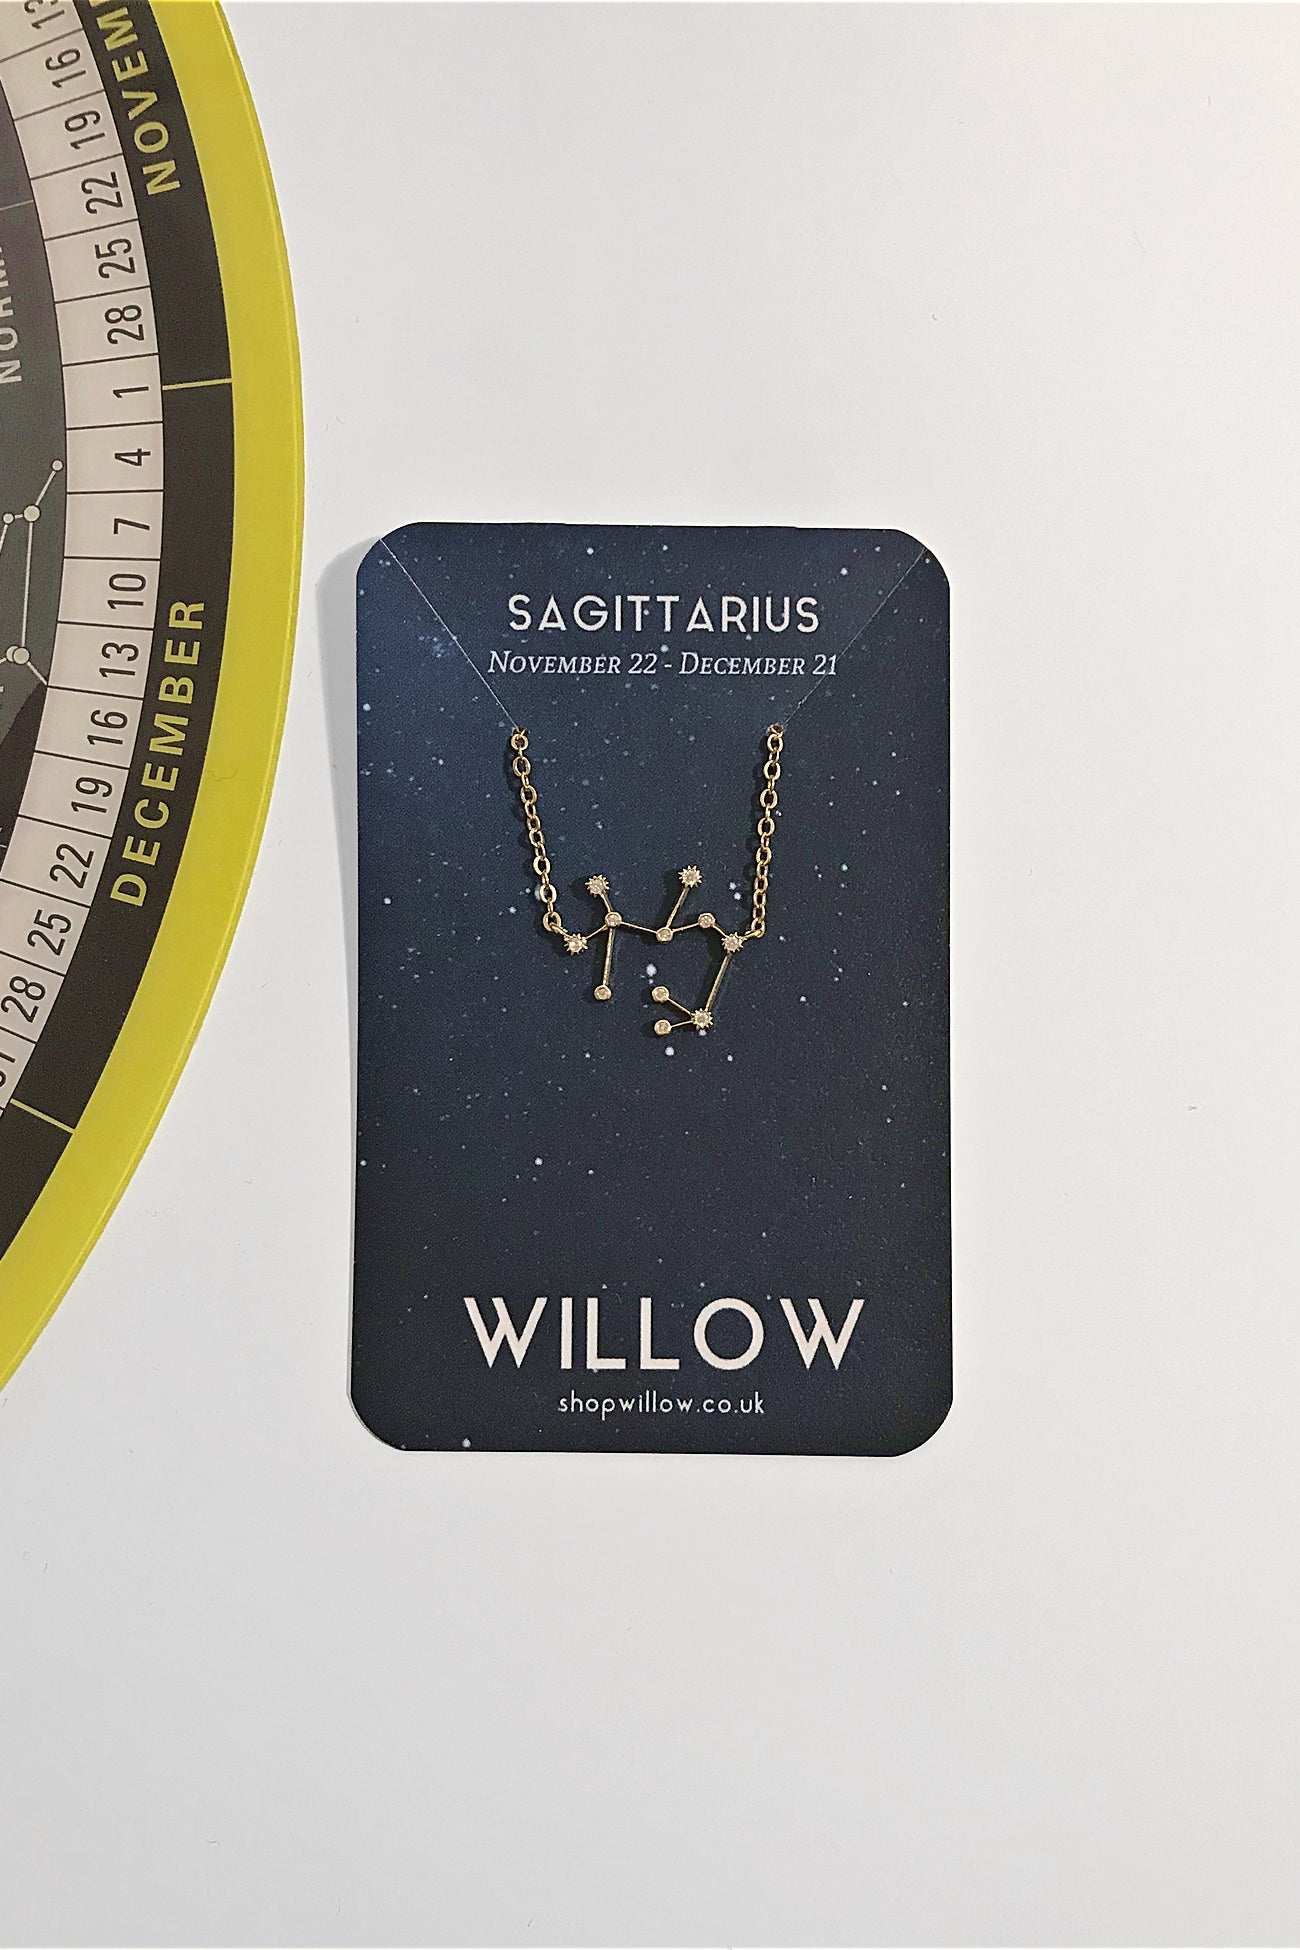 Sagittarius mini constellation necklace